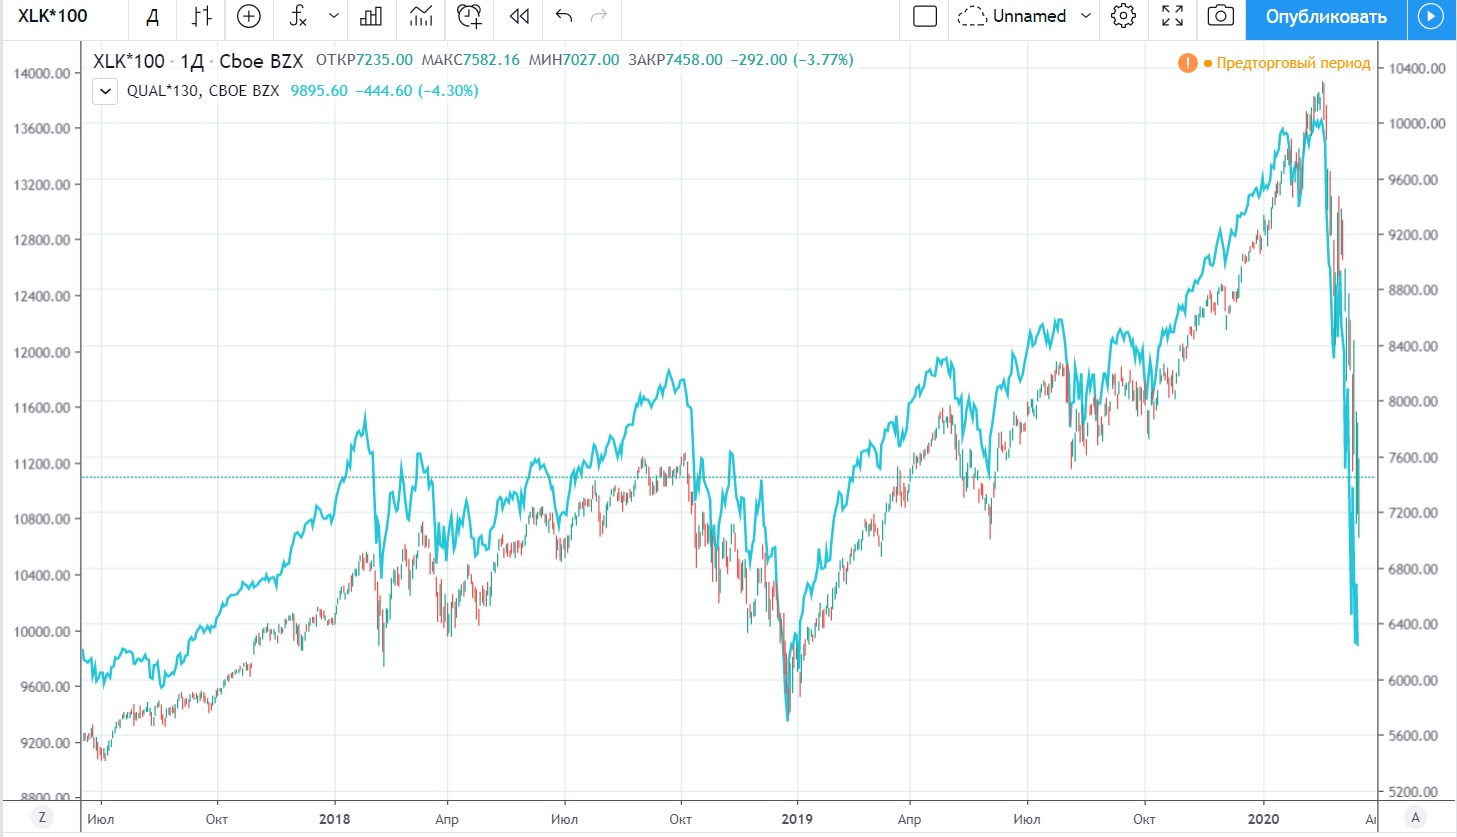 XLK100 and QUAL130 two charts